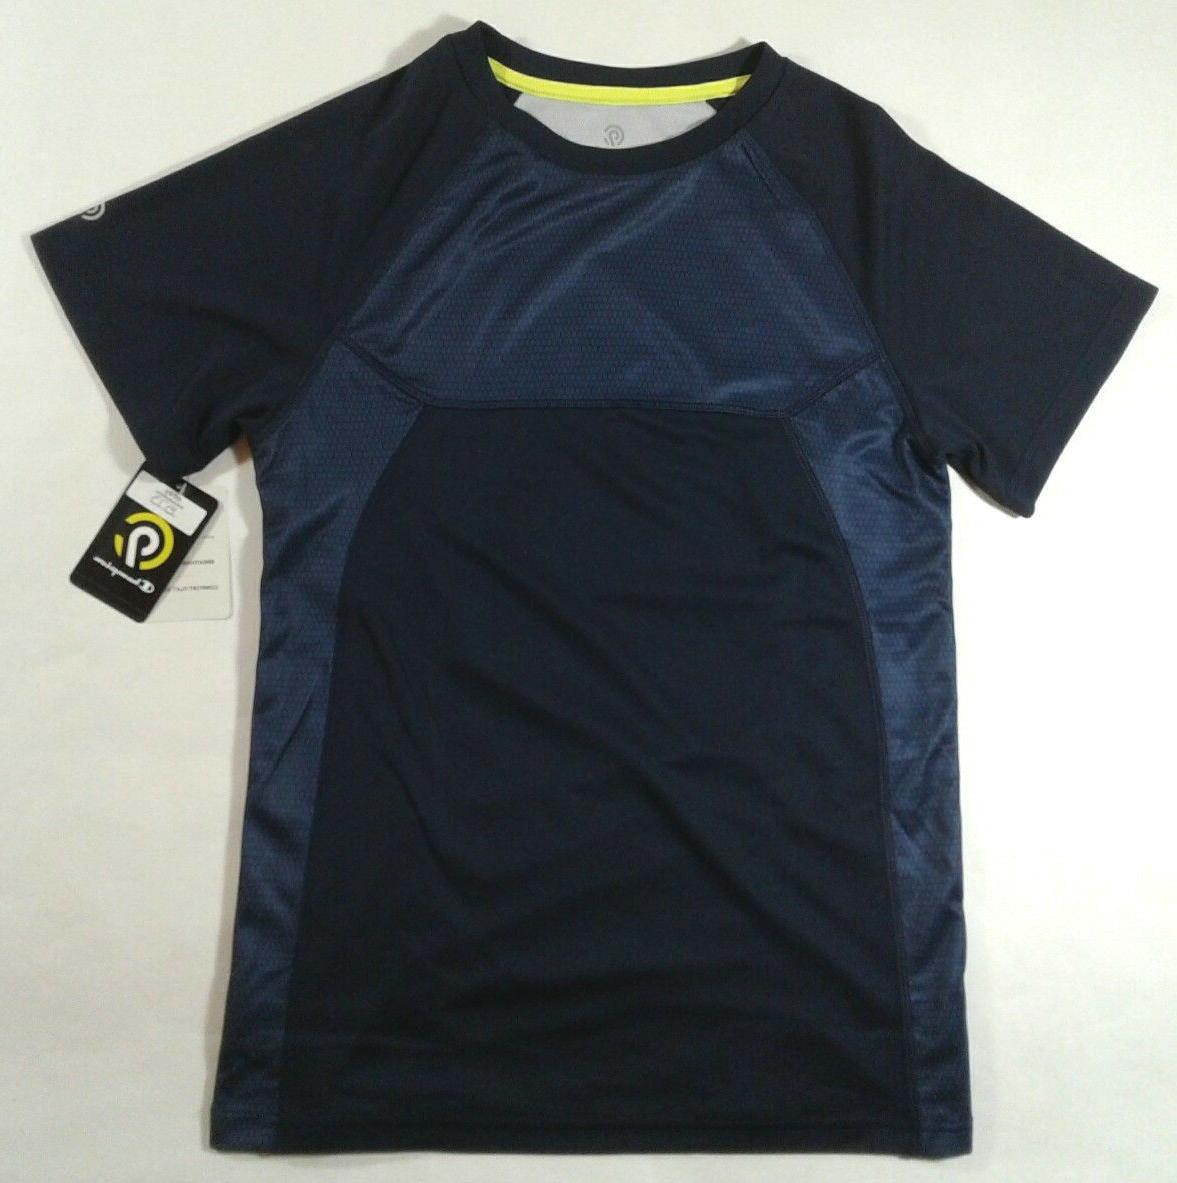 BOYS YOUTH C9 BY CHAMPION DUO DRY SHORT SLEEVE SHIRT SIZE LA